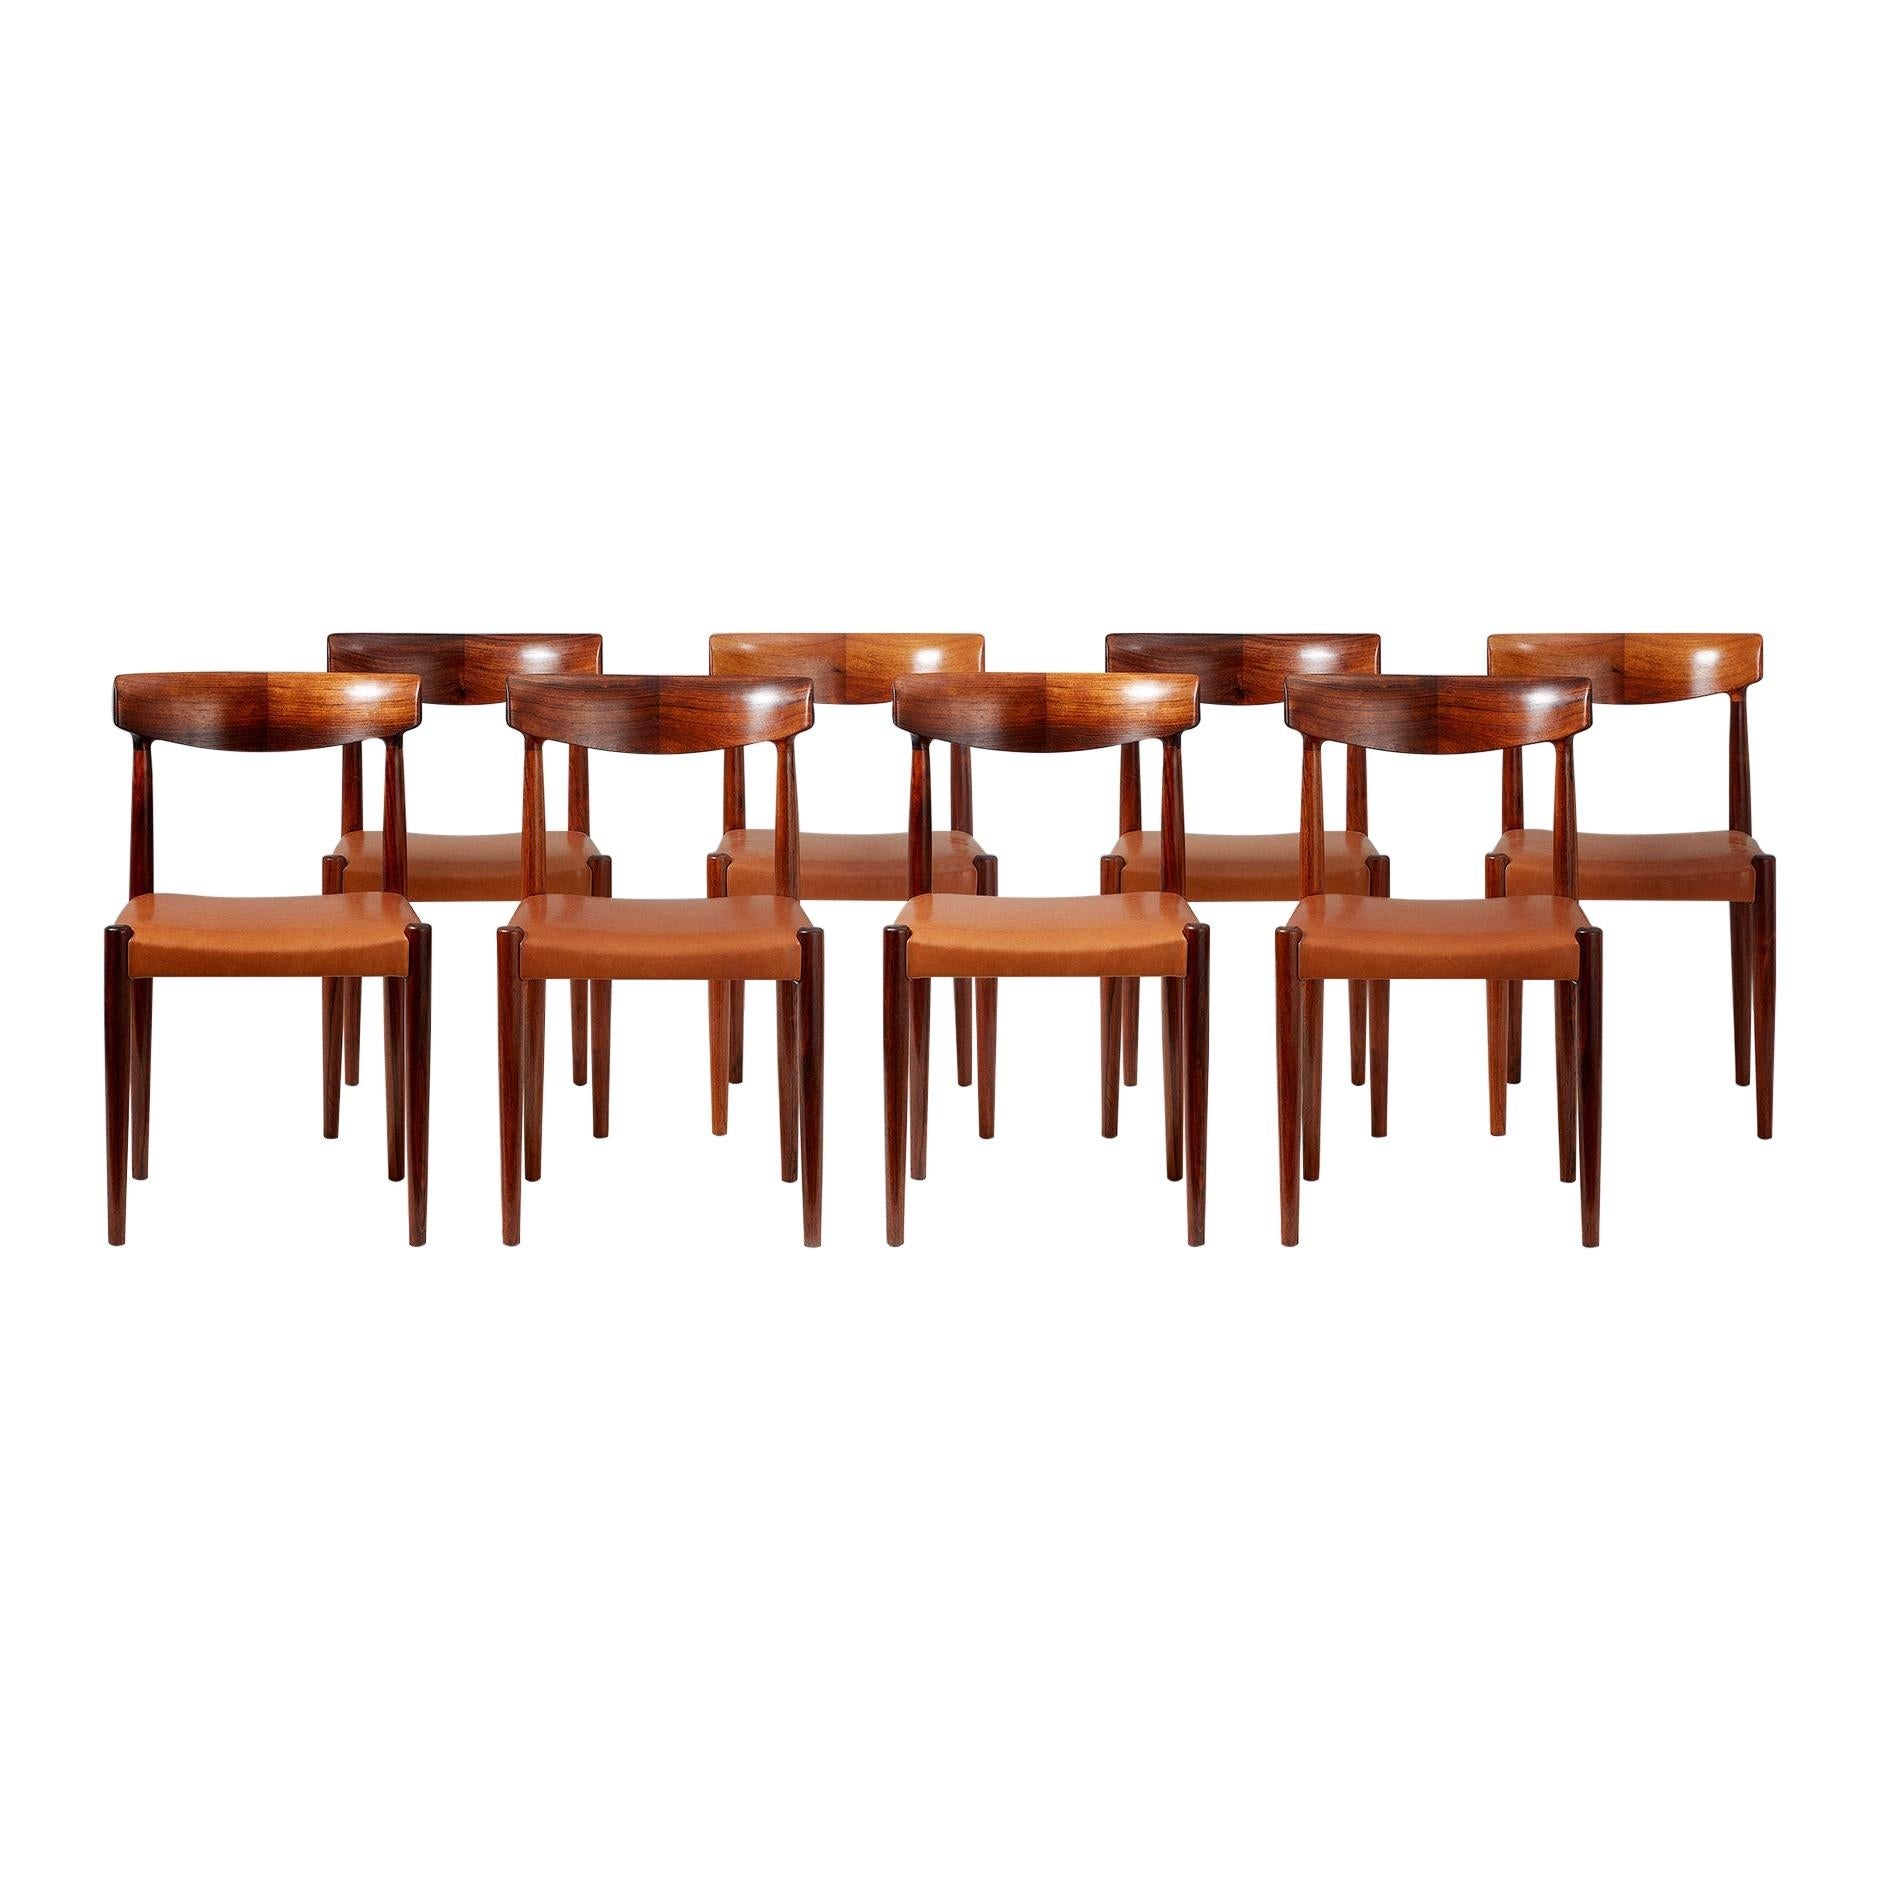 Knud Faerch Set of 8 Model 343 Dining Chairs, Rosewood and Leather